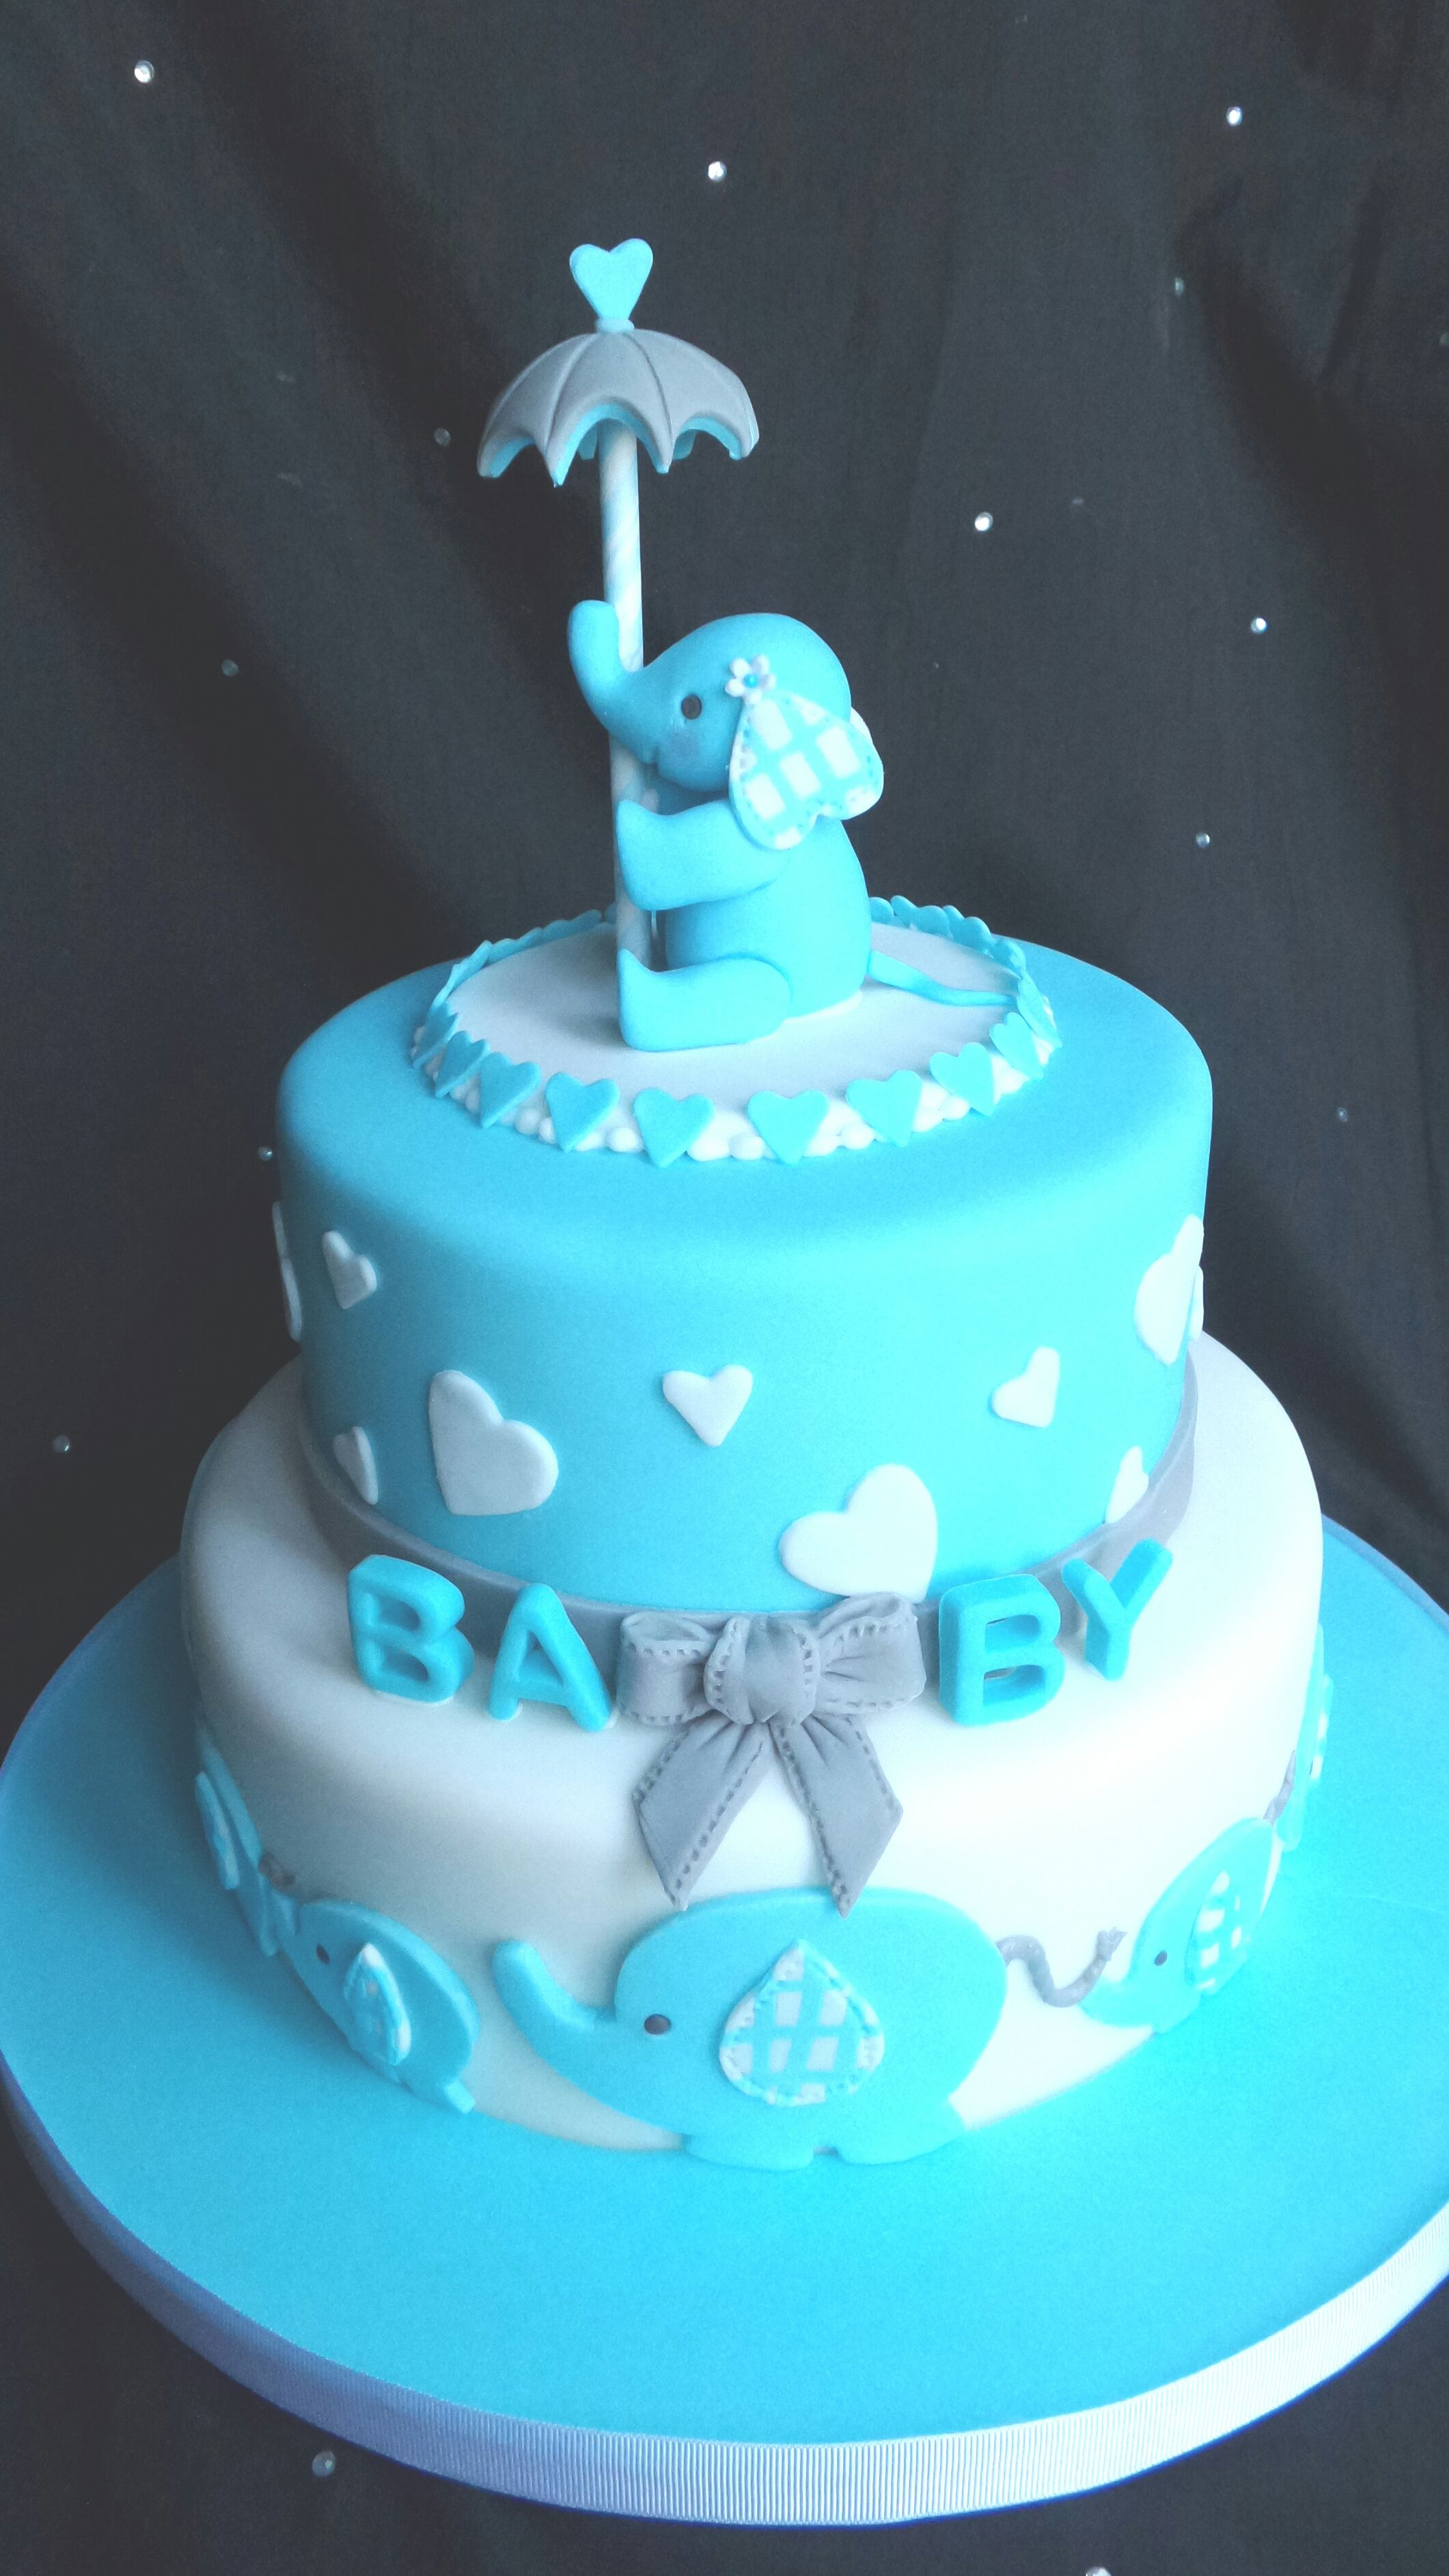 Baby Shower Cake With Hand Crafted Sugar Paste Elephants Cake